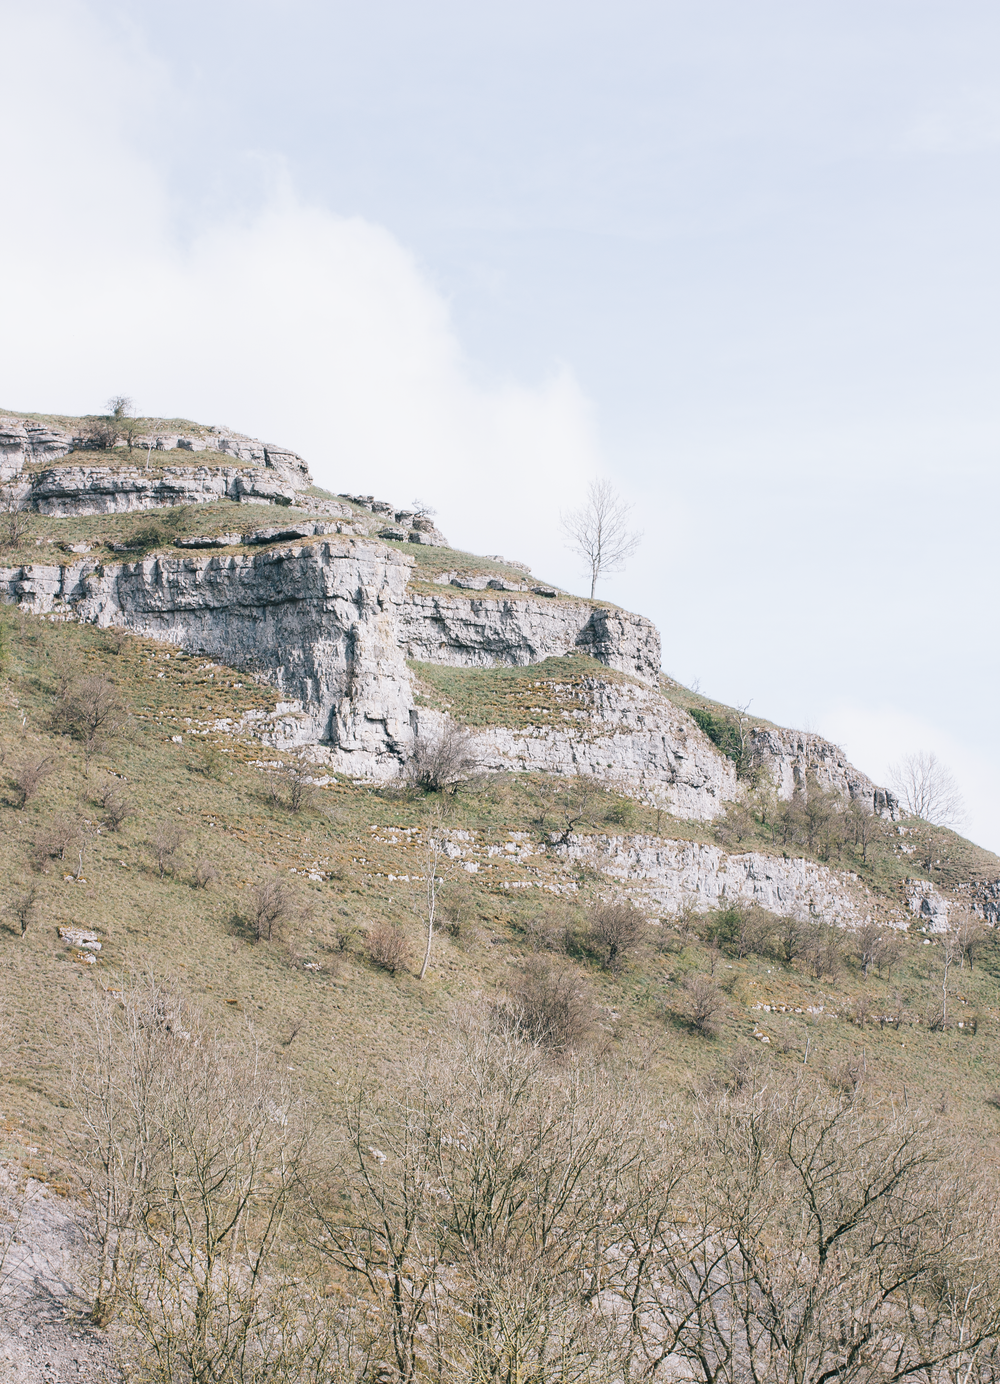 Lathkill-dale-1.png